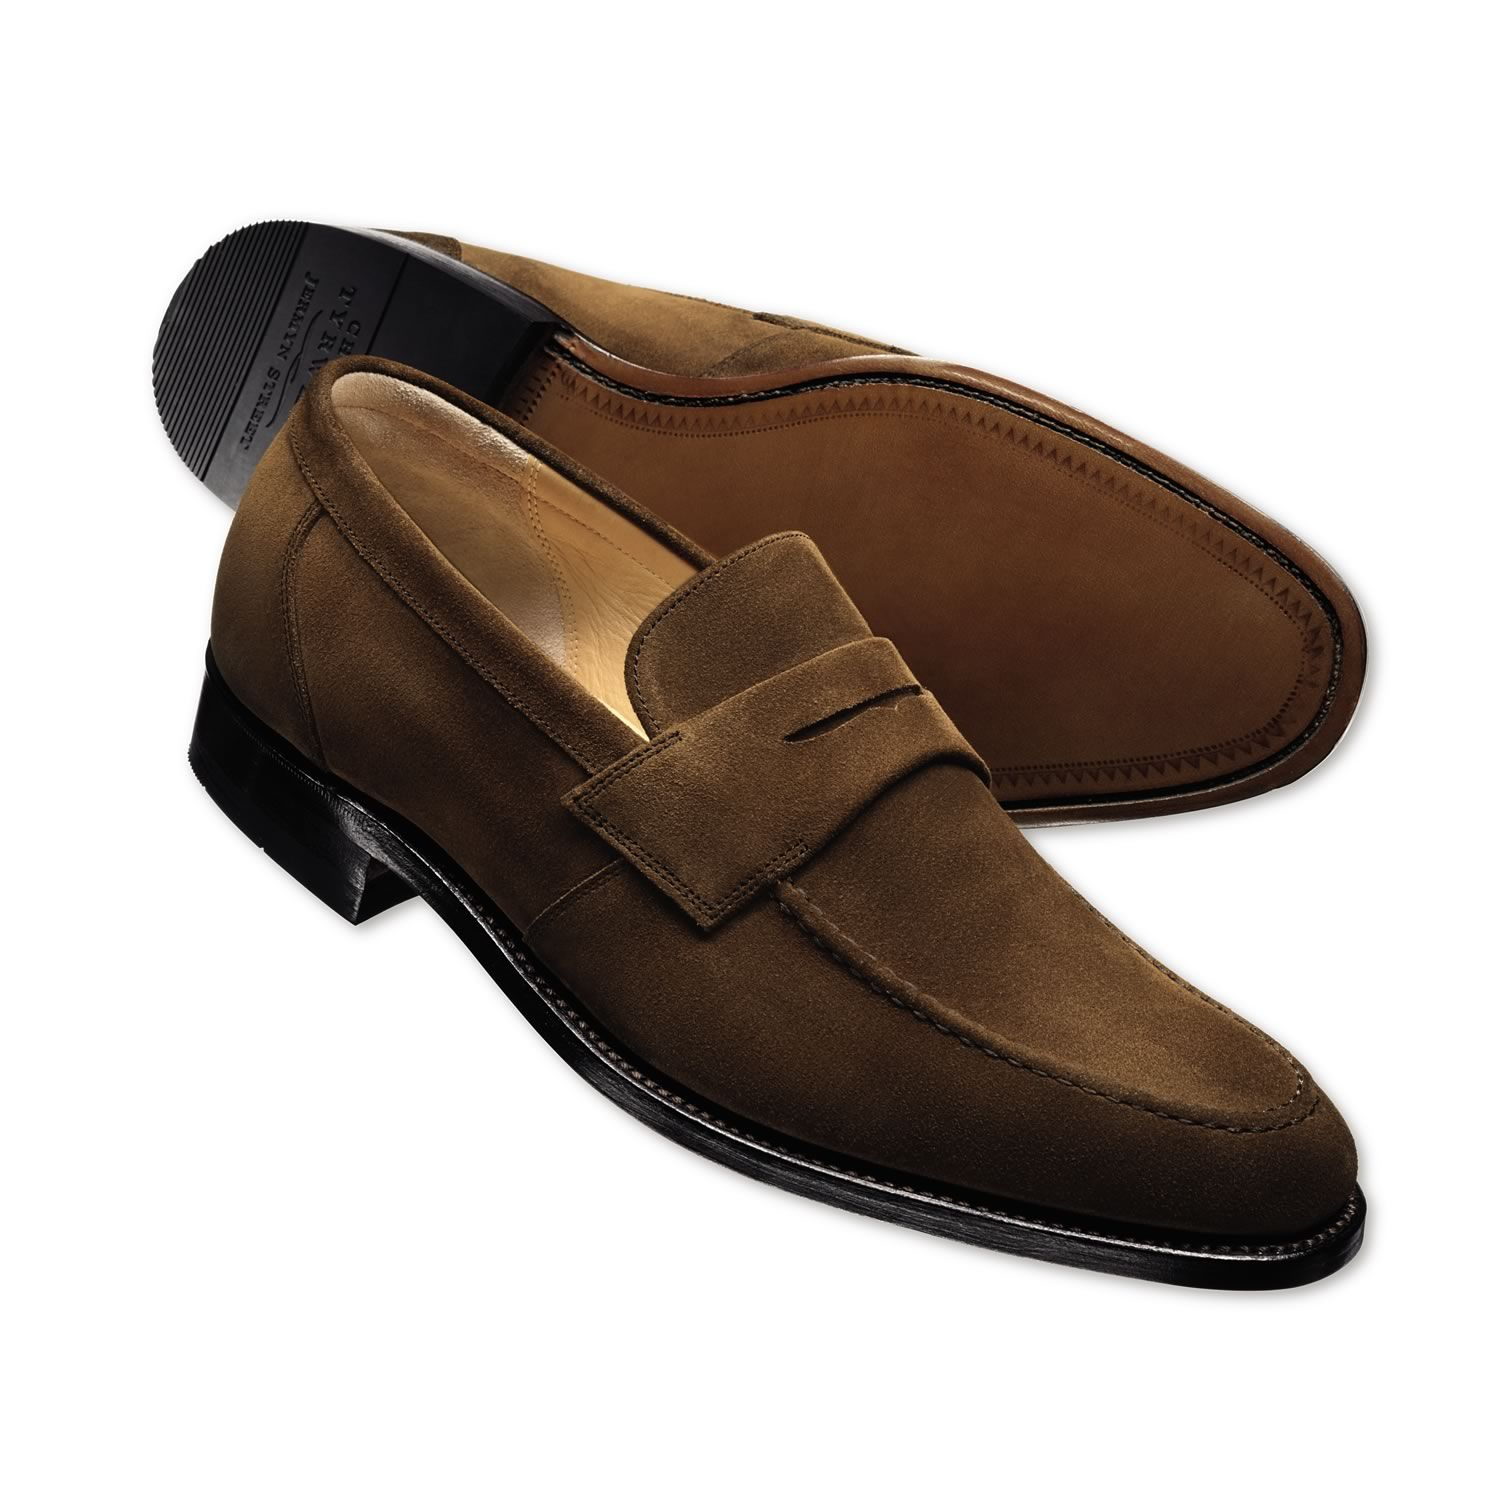 Shop online for Men's Slip-On Loafers, Driving Shoes & Moccasins at megasmm.gq Find boat shoes & mules. Free Shipping. Free Returns. All the time.